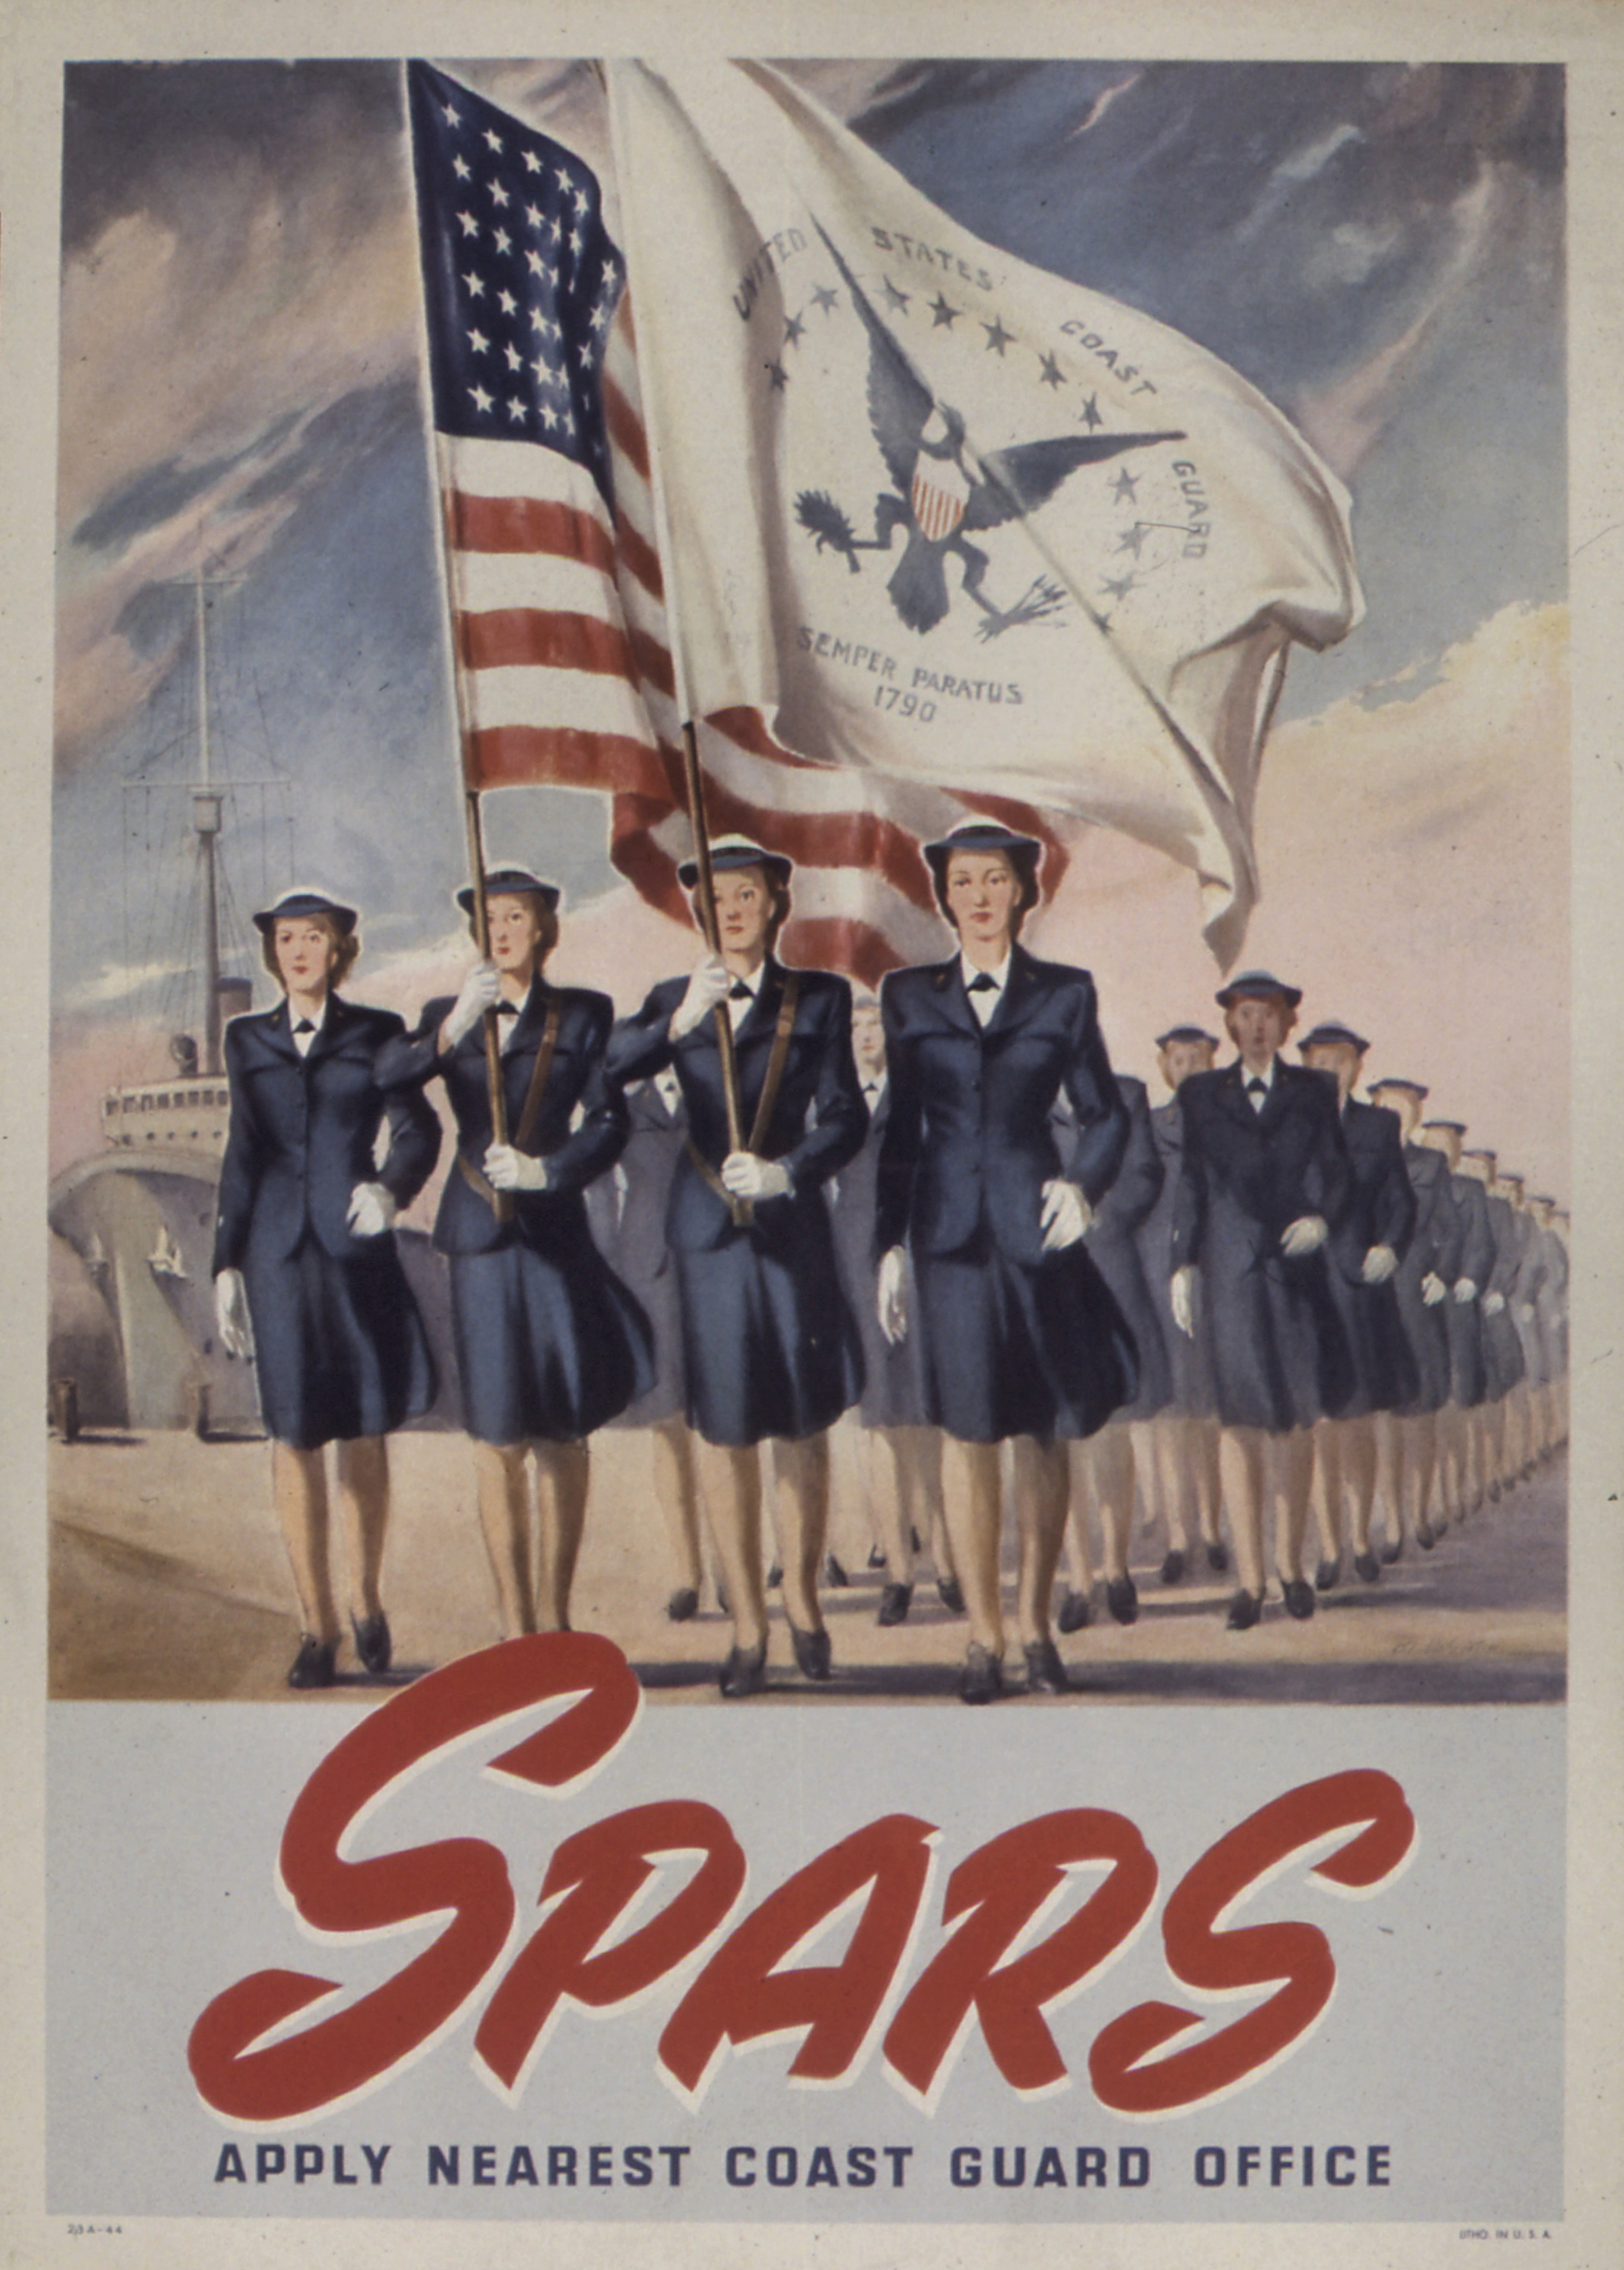 Coast Guard SPARS Recruiting Poster